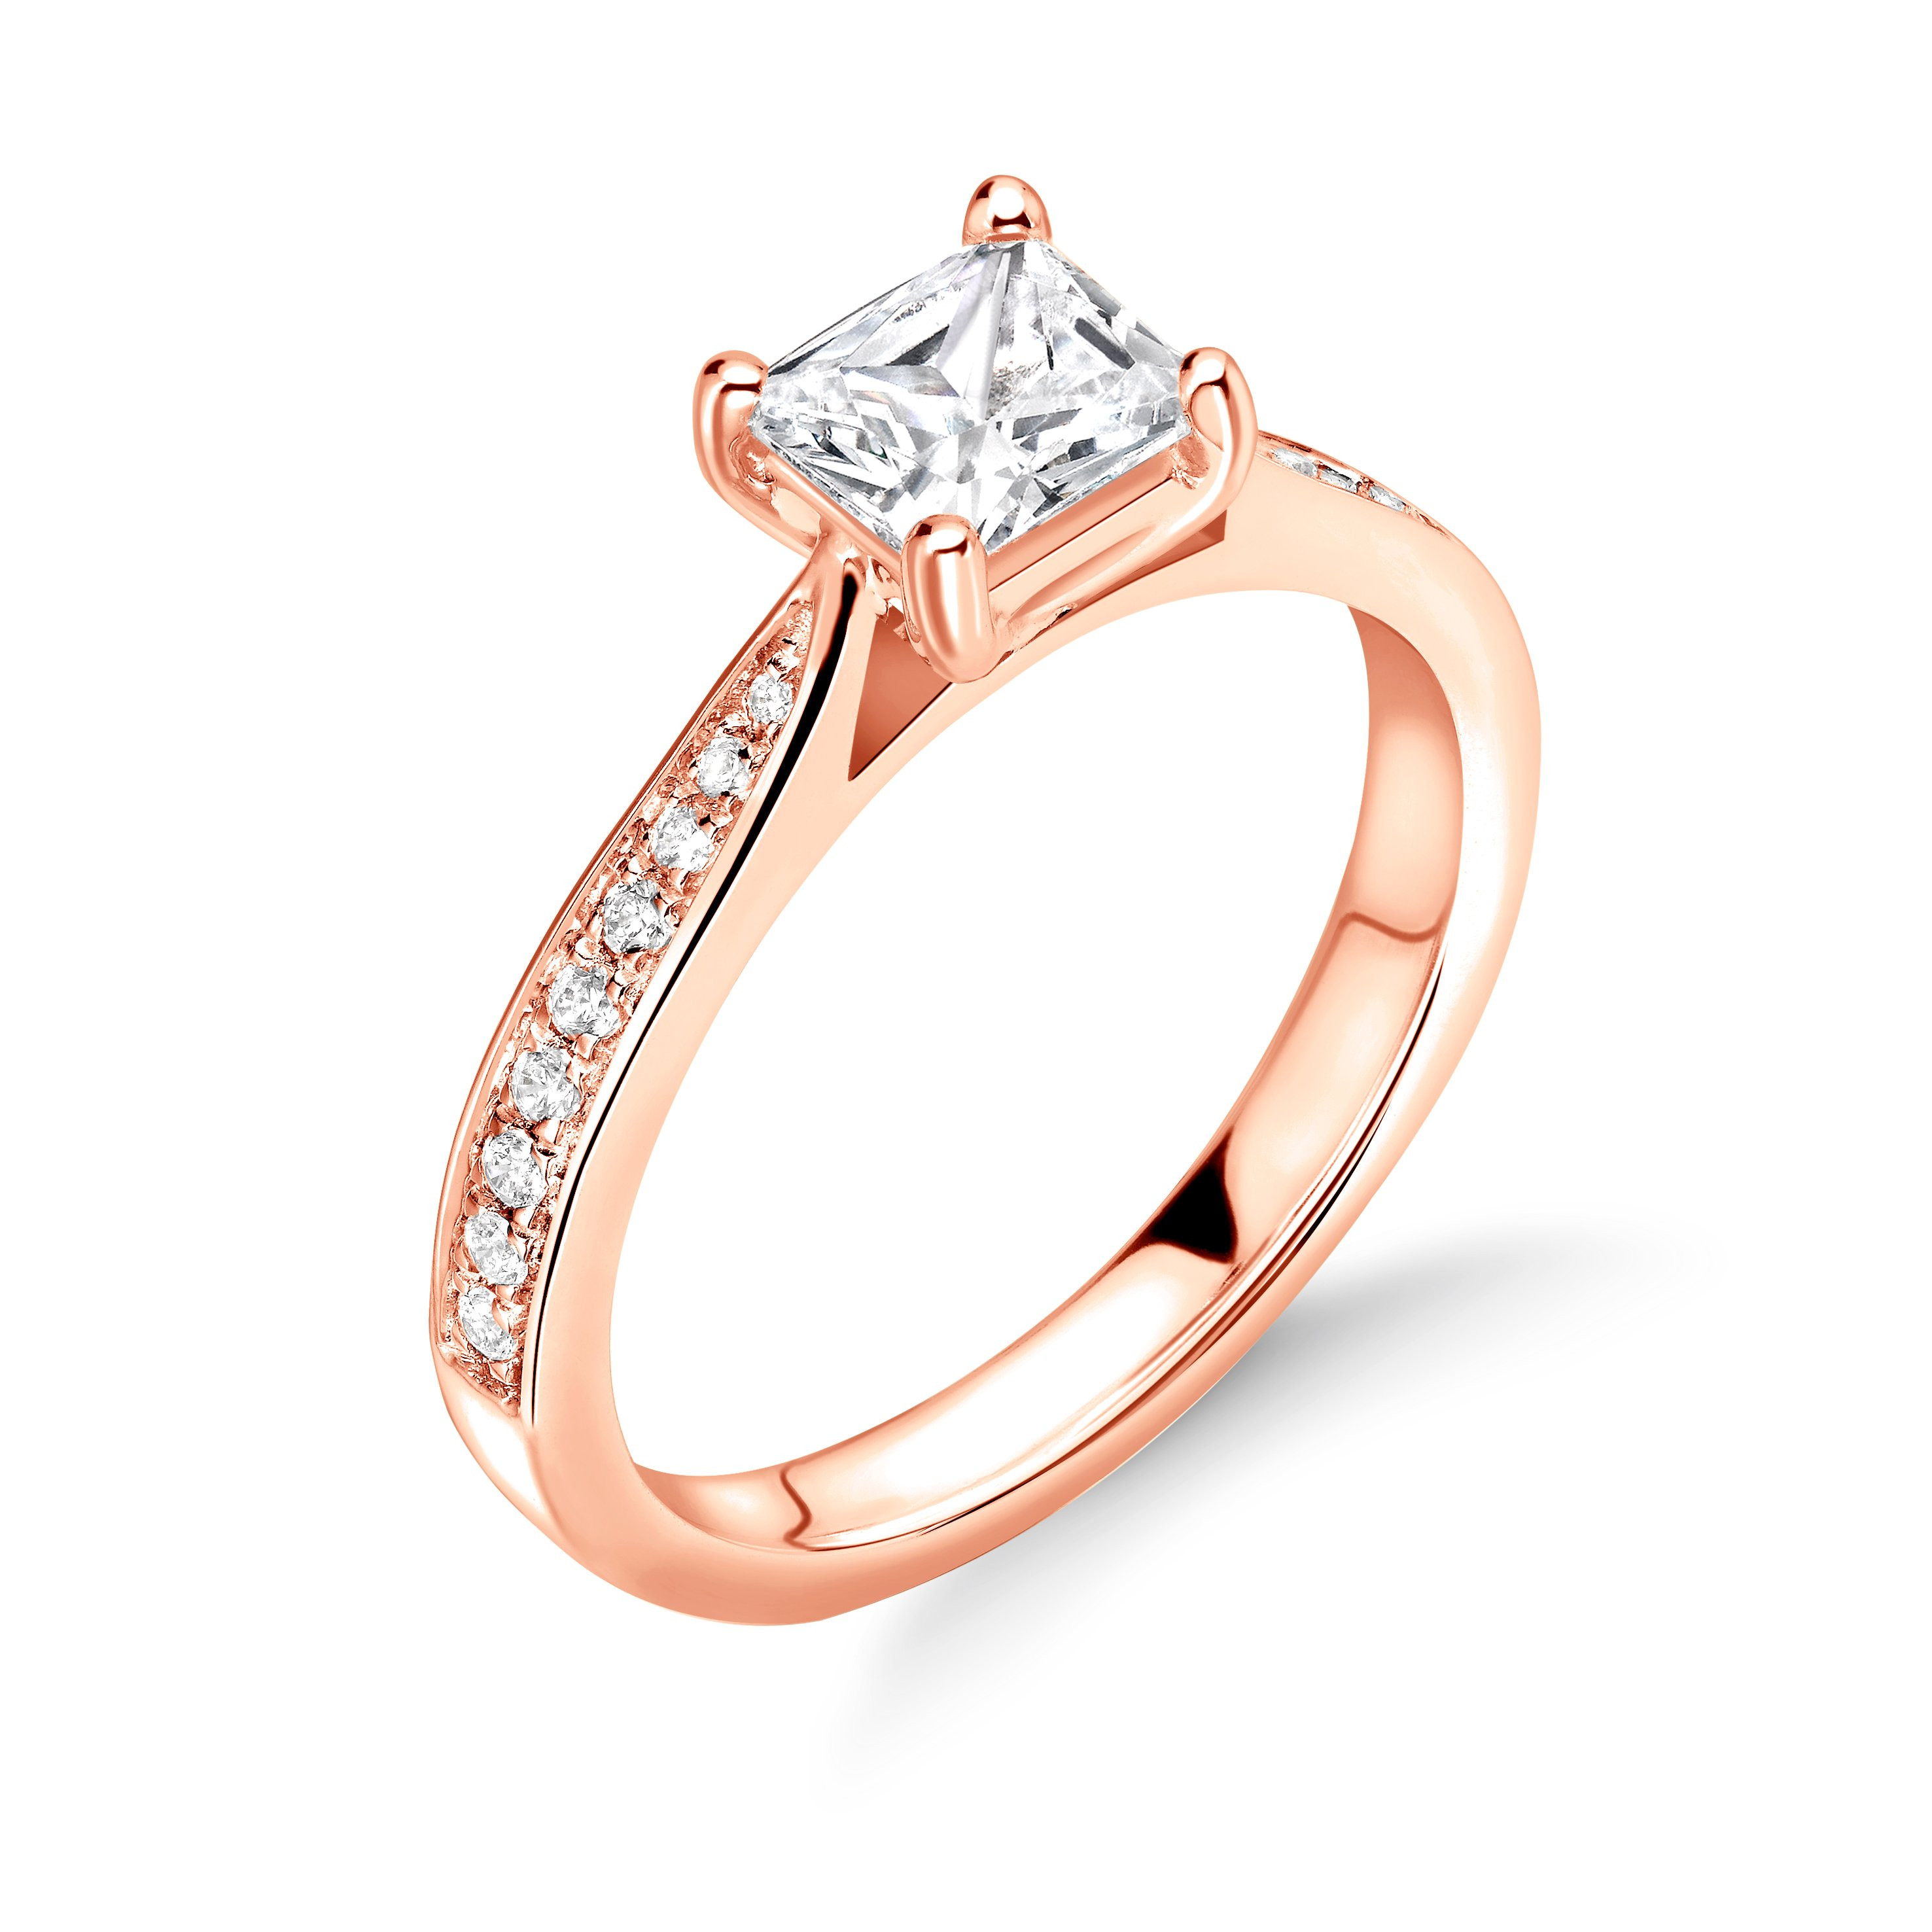 4 Prong Setting Princess Shape Tapering Delicate Shoulder Halo Diamond Engagement Rings